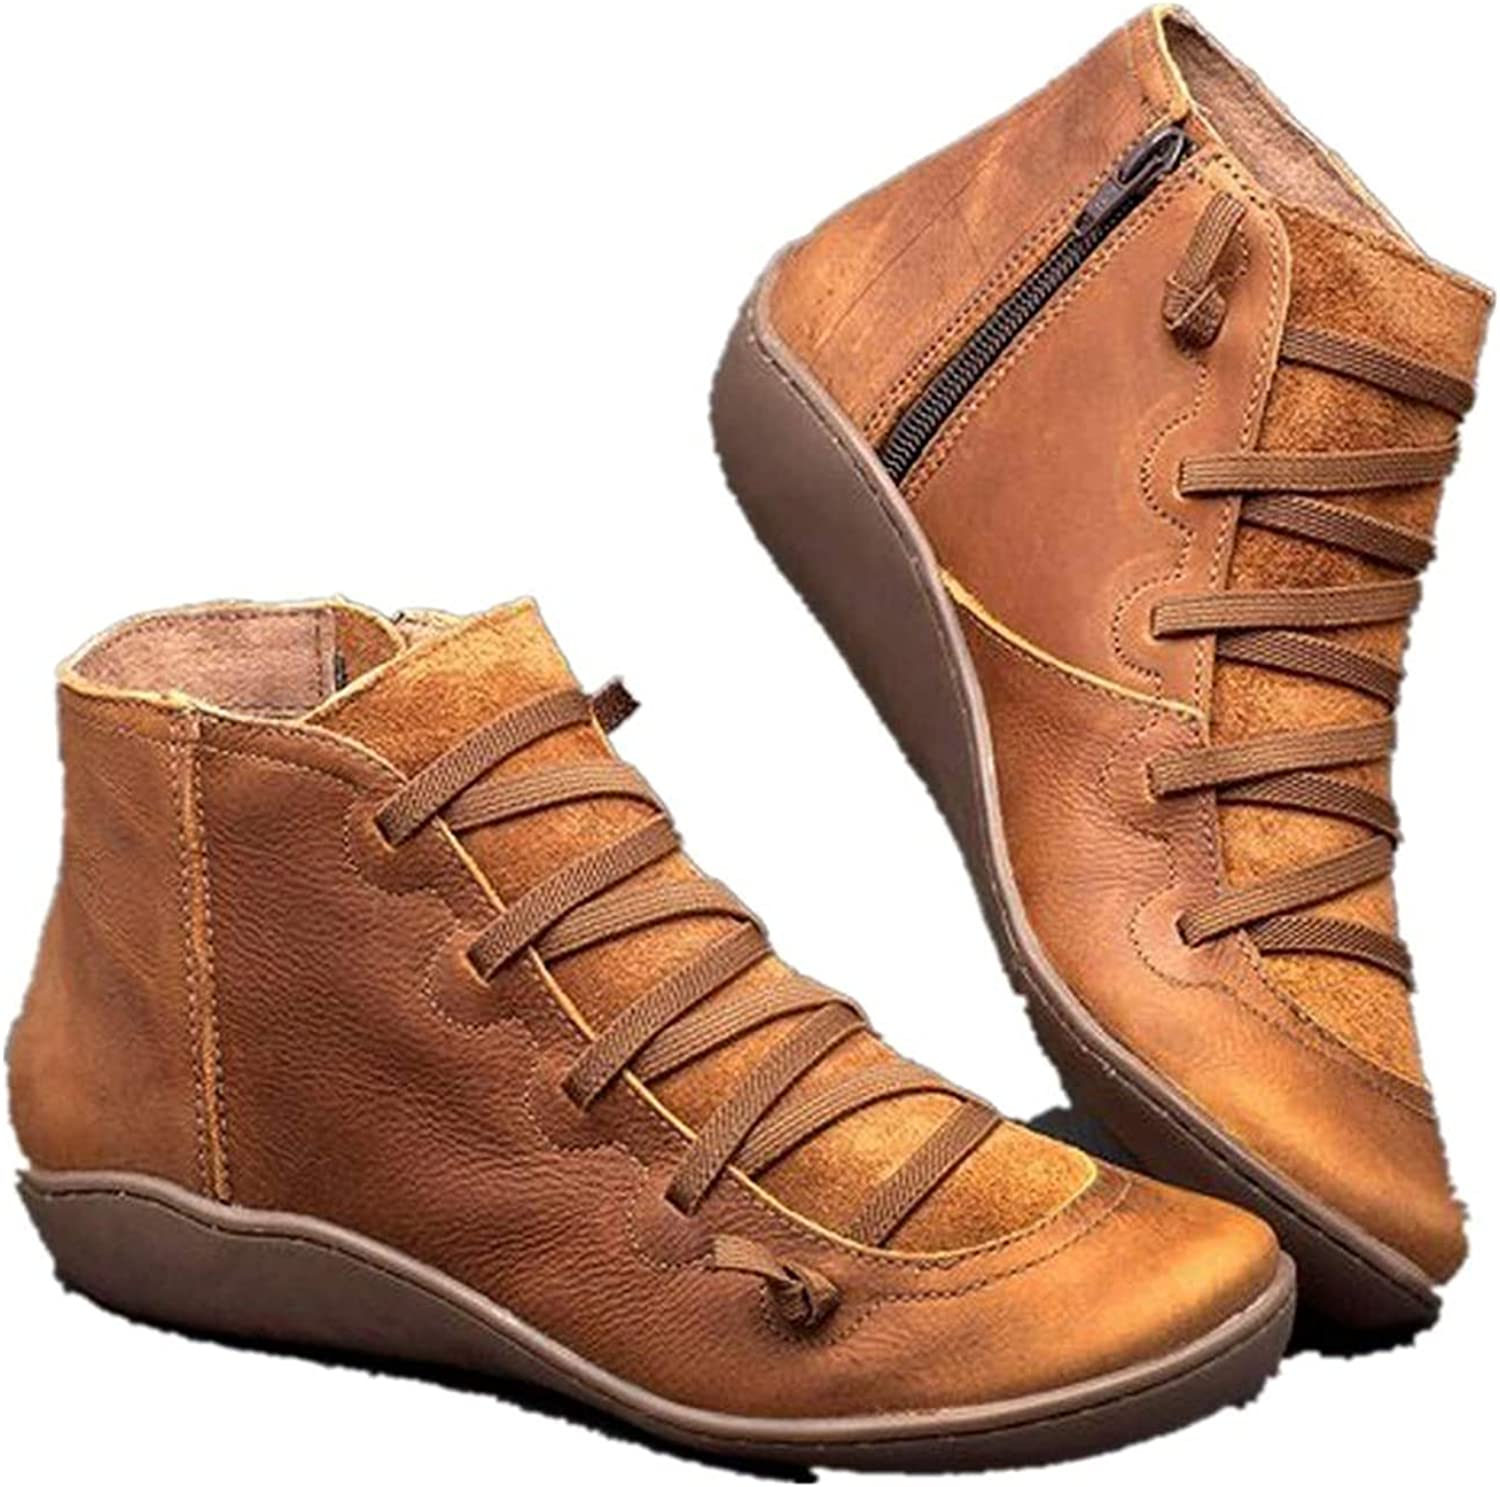 NLOMOCT Platform Boots for Women, Side Zipper Lace Up Hiking Cowgirl Boots Round Toe Western Boots Winter Ankle Booties